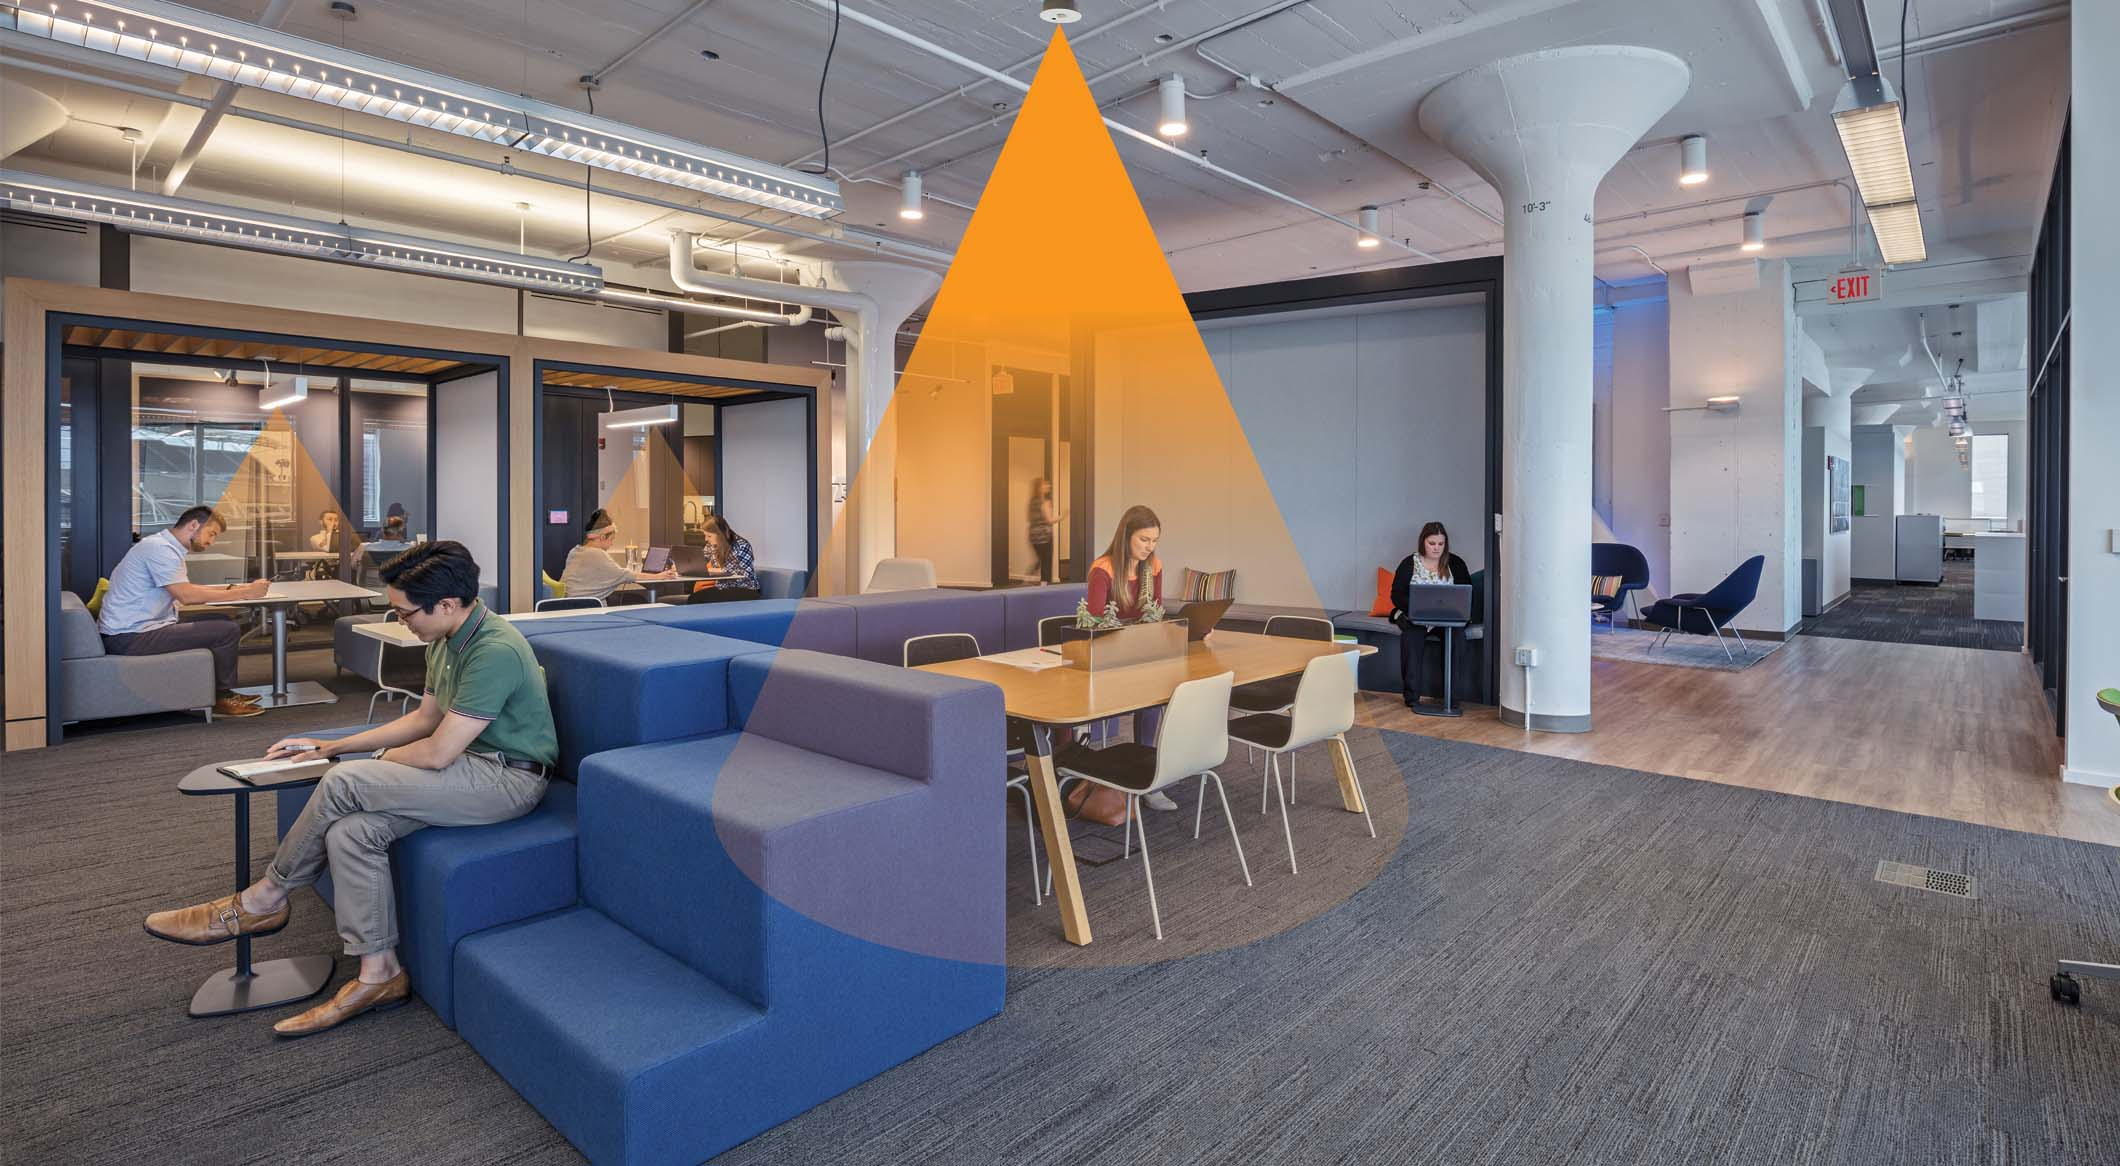 People sit in a common area with orange rays drawn to illustrate sensors